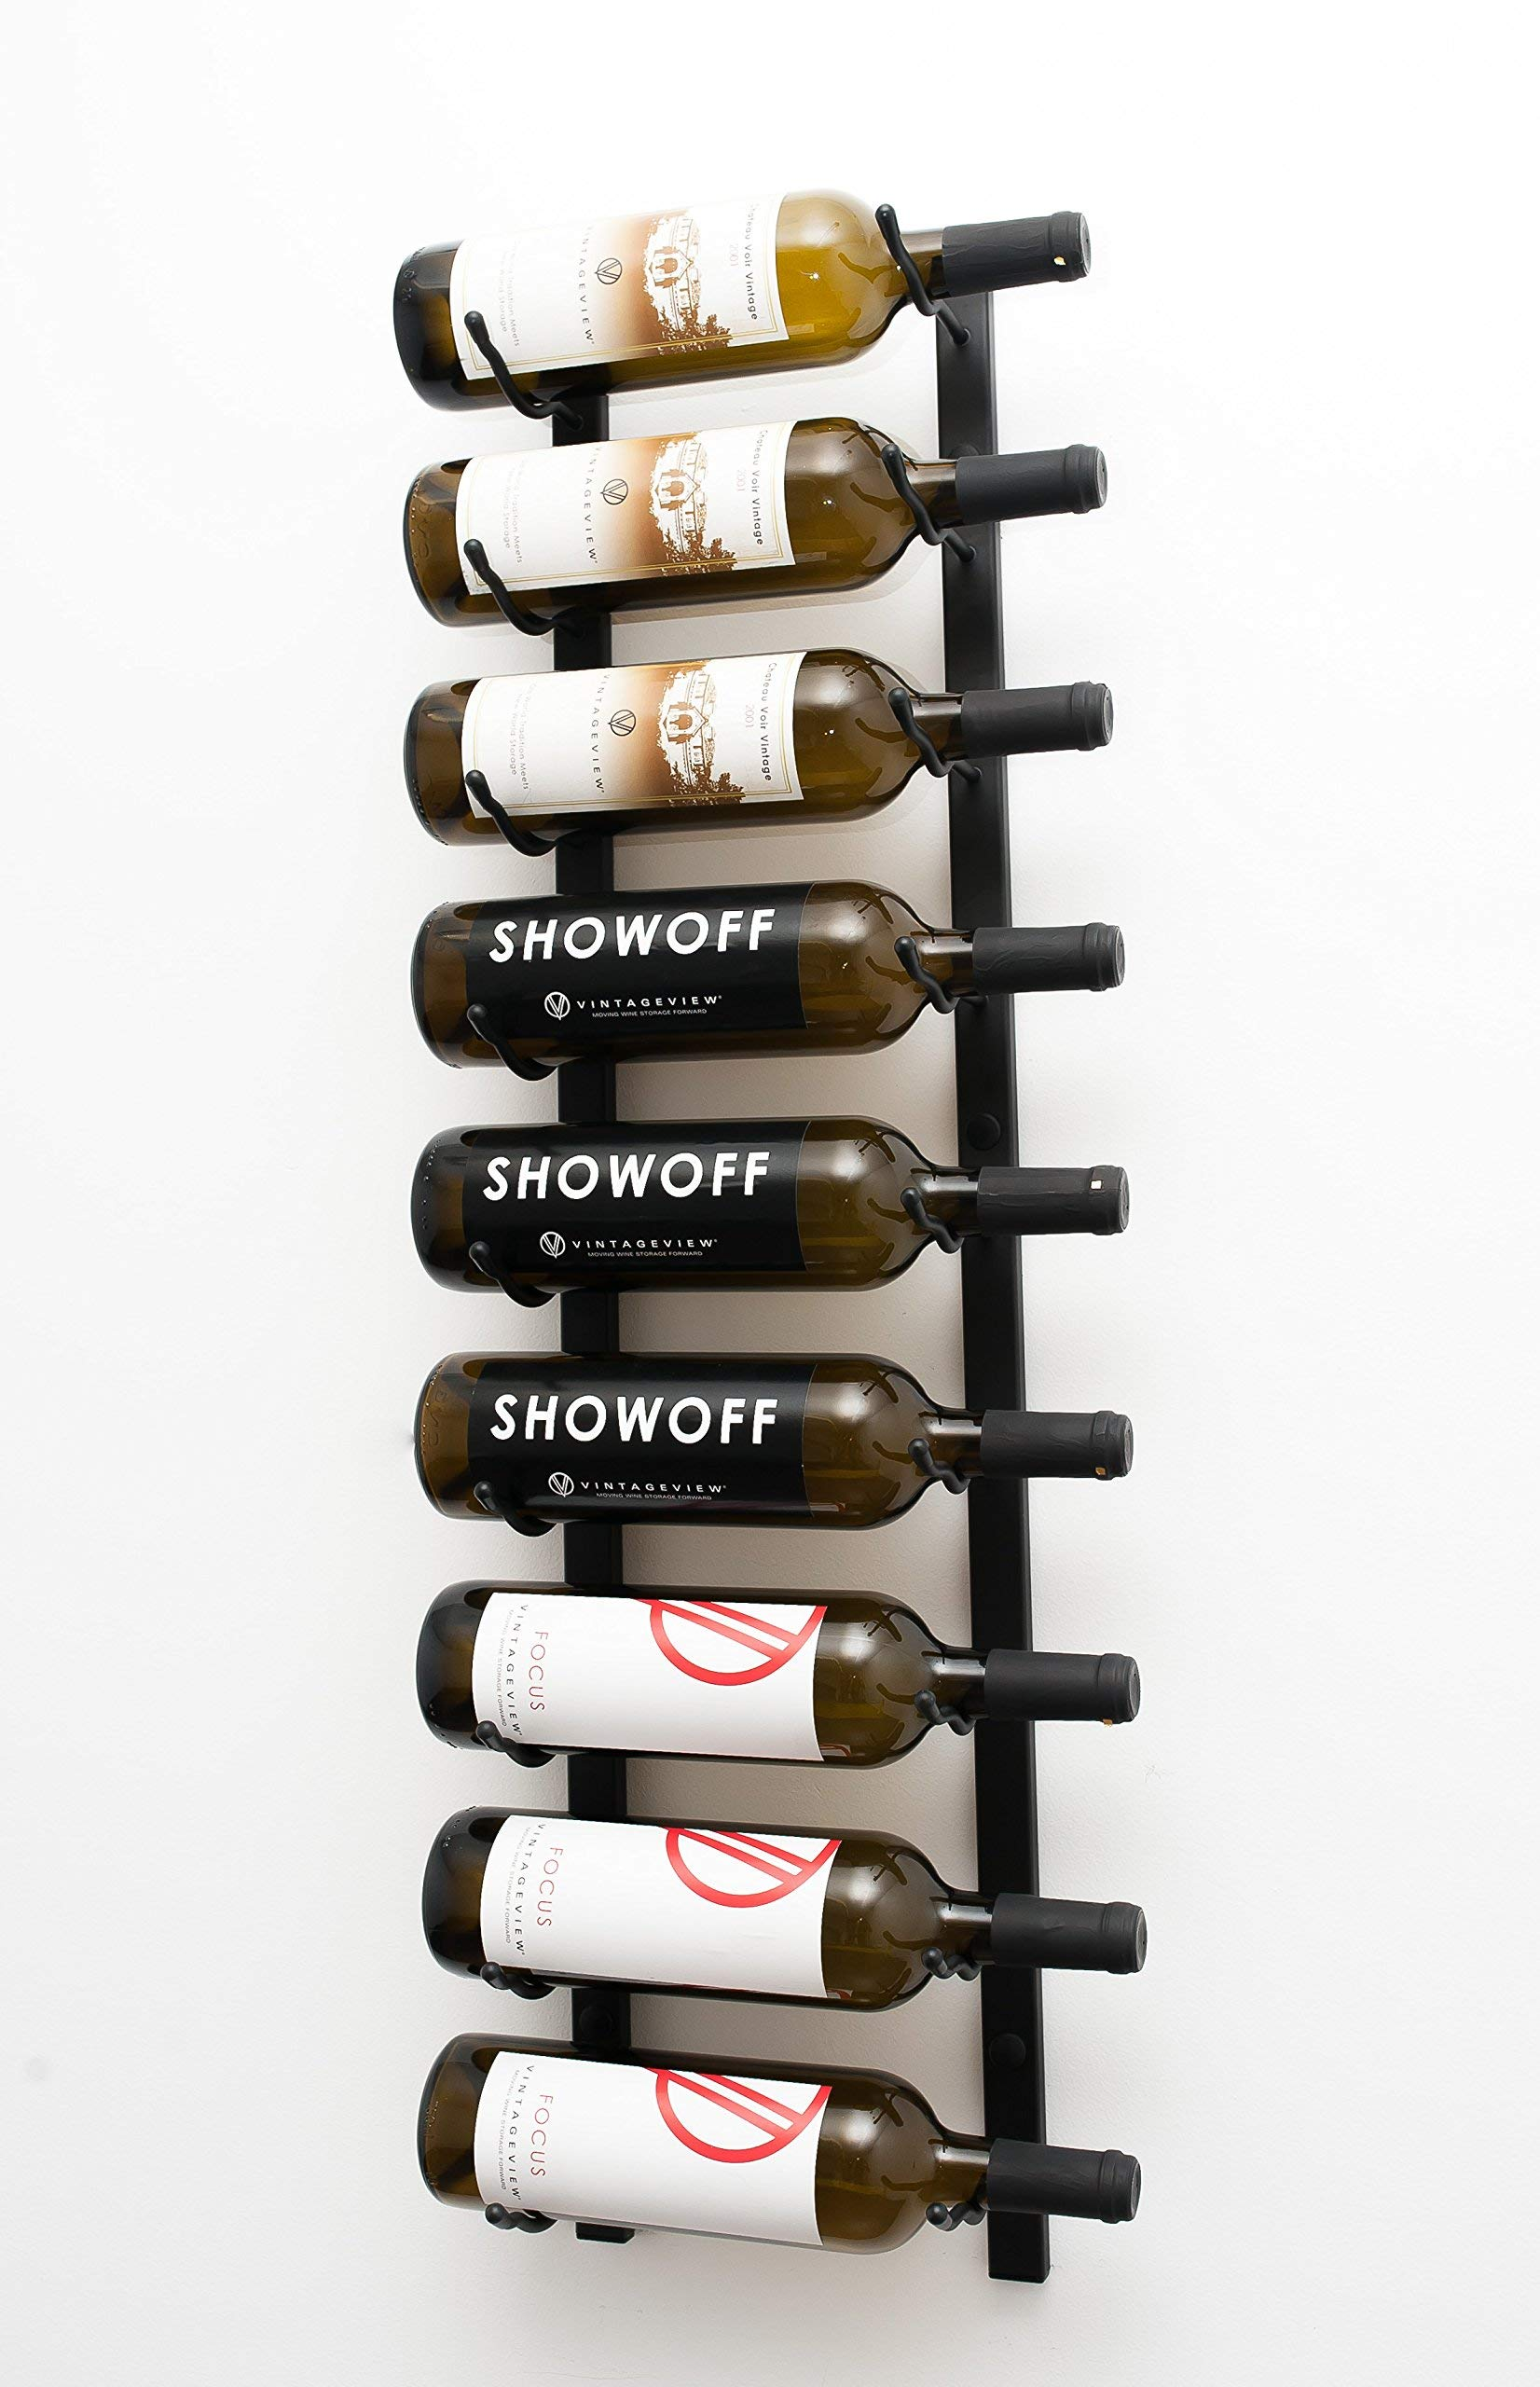 VintageView Wall Series - 9 Bottle Wall Mounted Wine Rack (Satin Black) Stylish Modern Wine Storage with Label Forward Design (Renewed) by VintageView